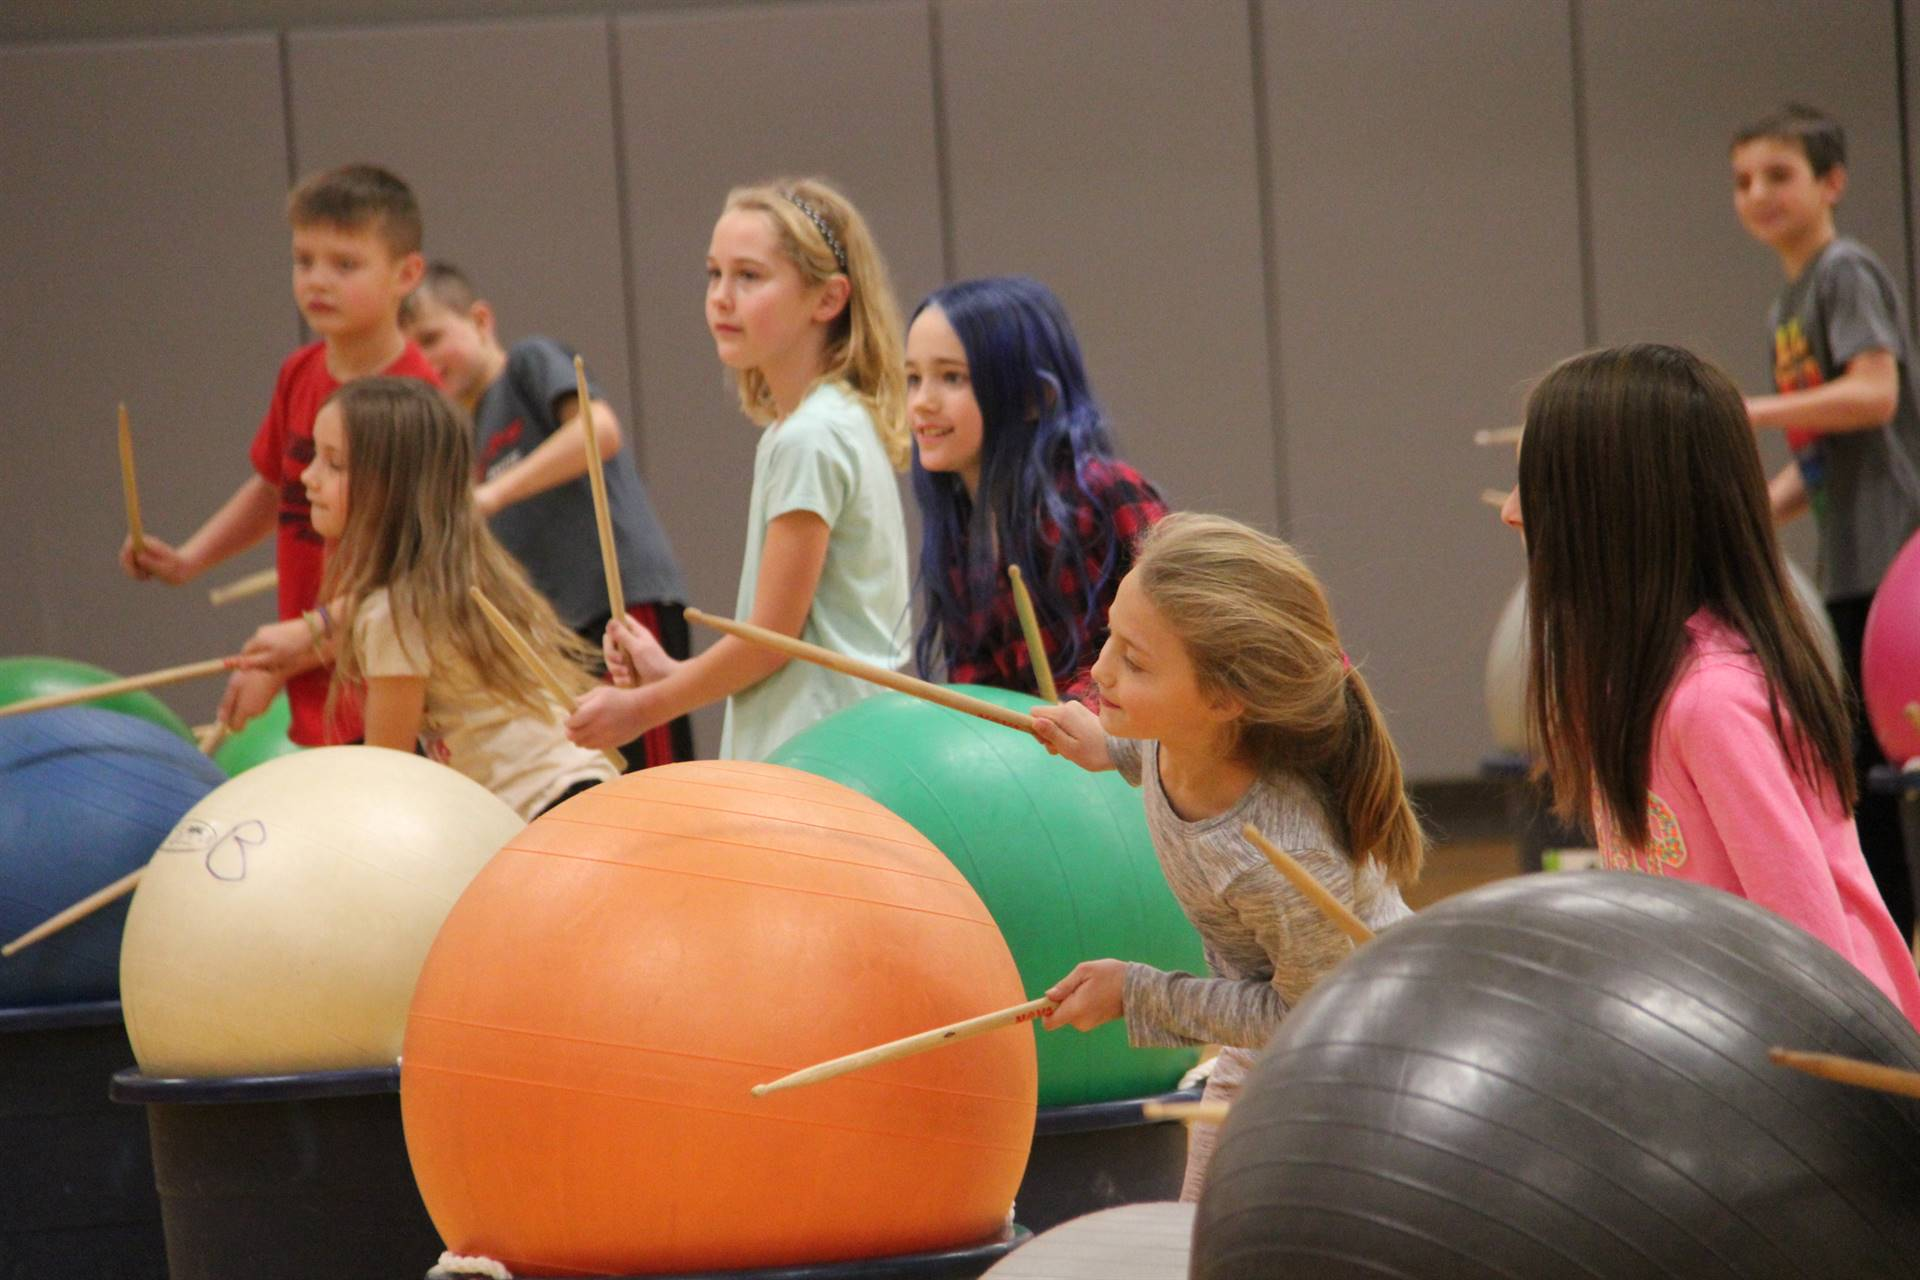 additional students hitting drum sticks on large exercise balls